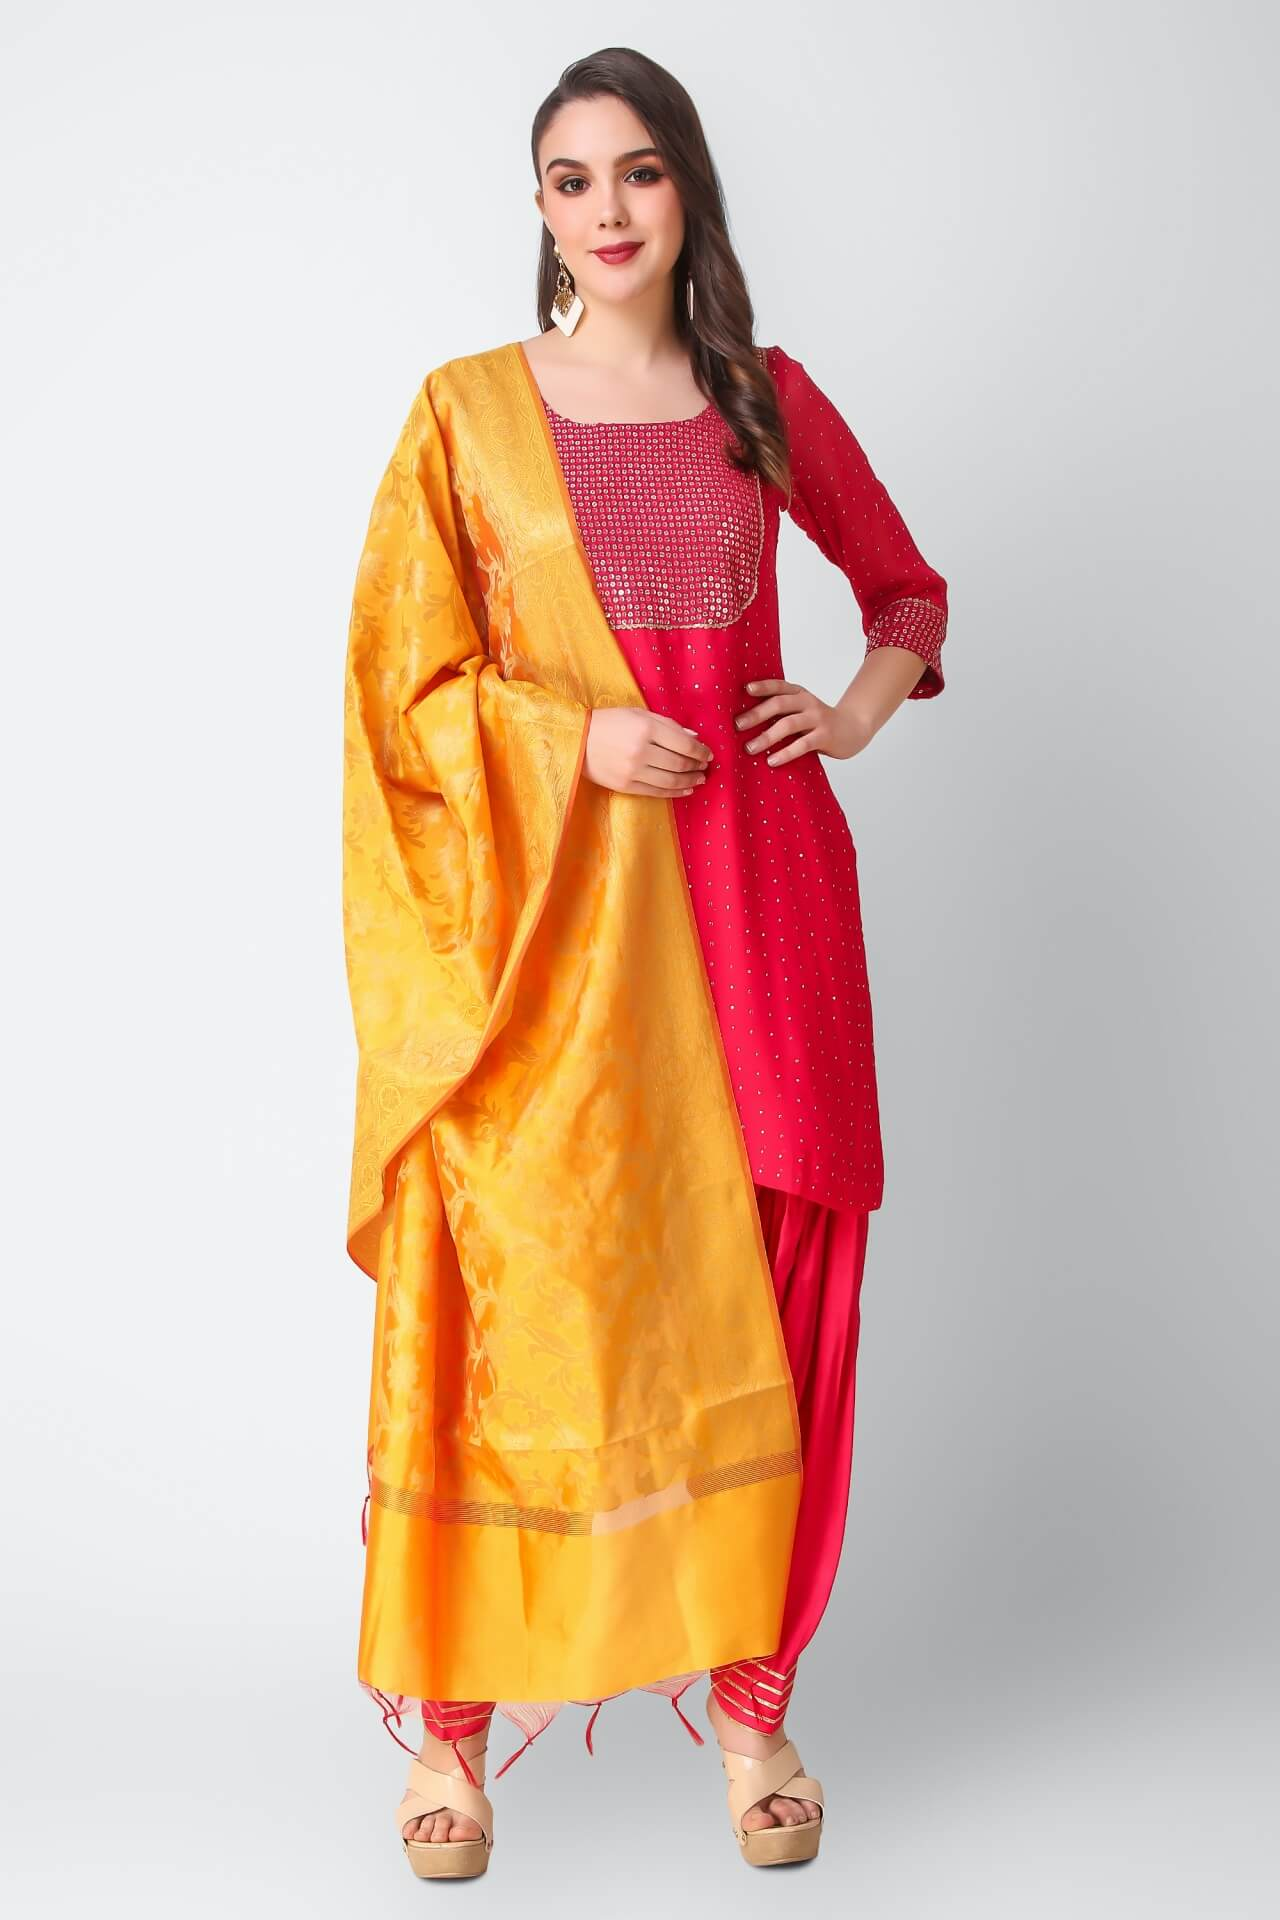 Fushia Patiala Suit With Mustard Banarsi Dupatta